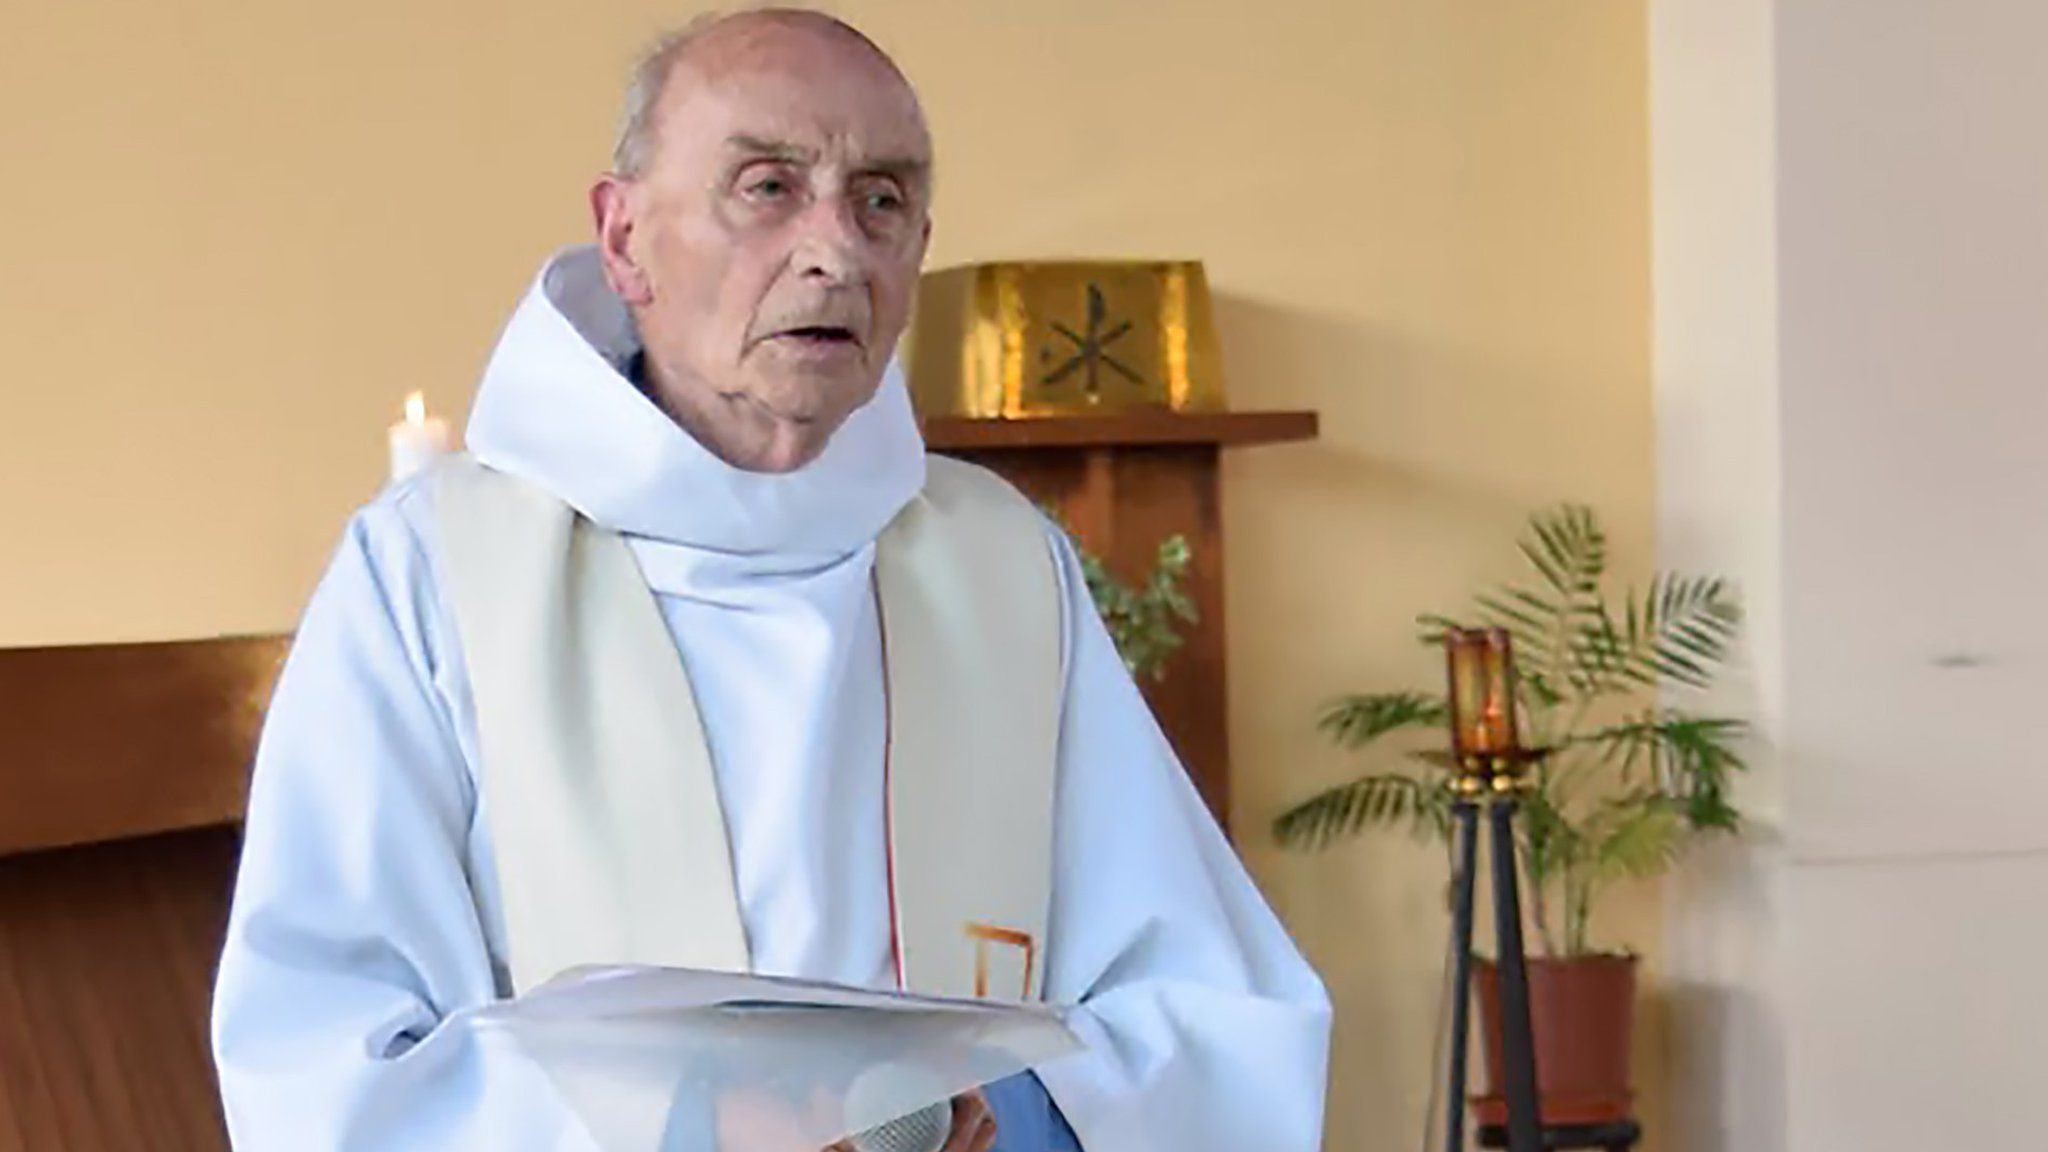 French priest takes his own life in church after abuse claims - BBC News